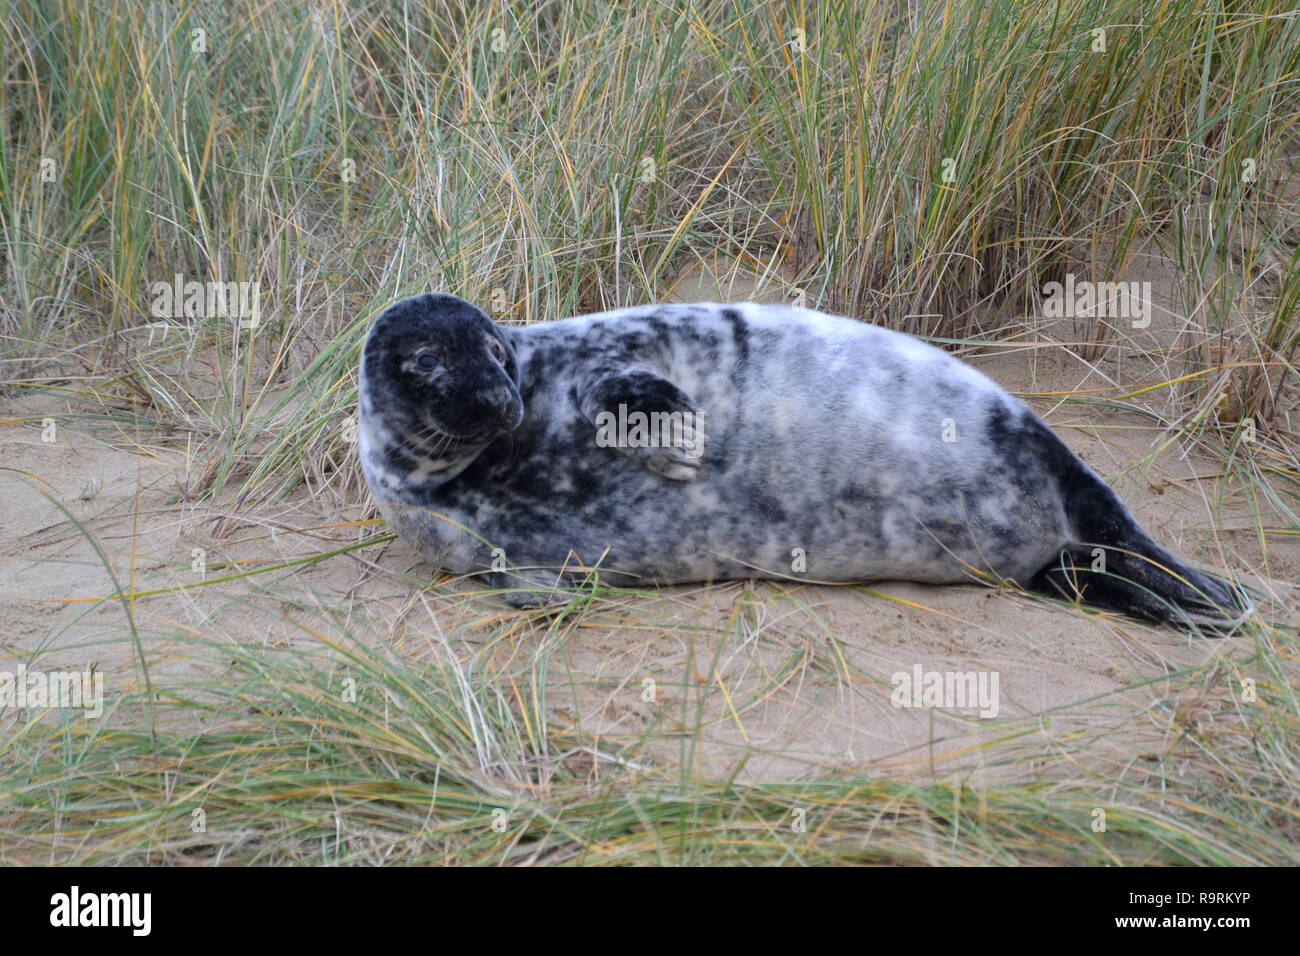 Horsey Beach, Norfolk, UK. 26th Dec, 2018. A young grey seal pup on Horsey Beach, Norfolk, UK on Boxing Day 2018. Every winter a colony of grey seals comes ashore to give birth at Horsey on the Norfolk Coast. When this photographs was taken there were more than 1,000. Credit: Steve Nichols/Alamy Live News Stock Photo